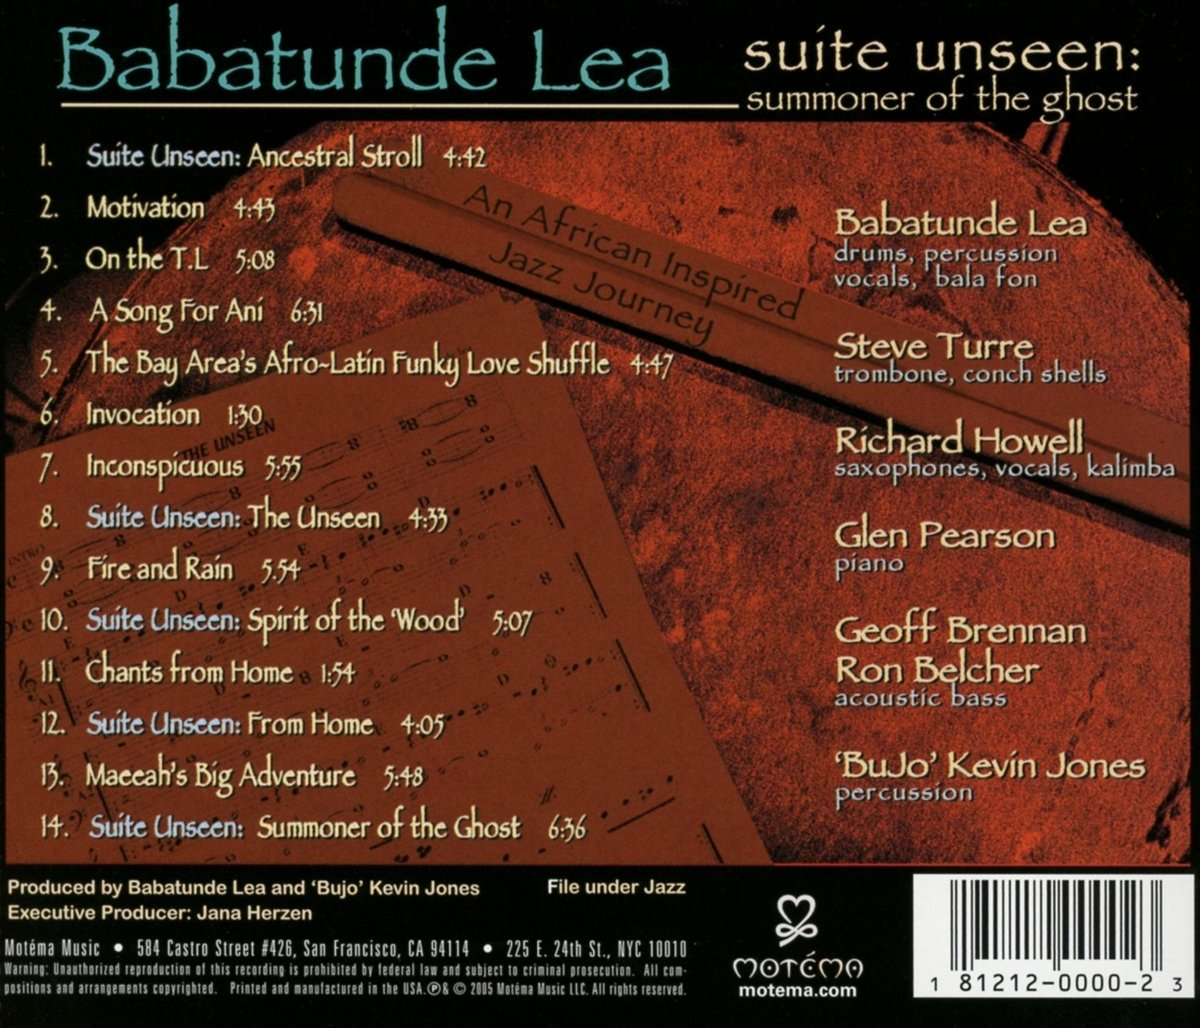 Babatunde Lea - Suite Unseen: Summoner of the Ghost - Amazon.com Music